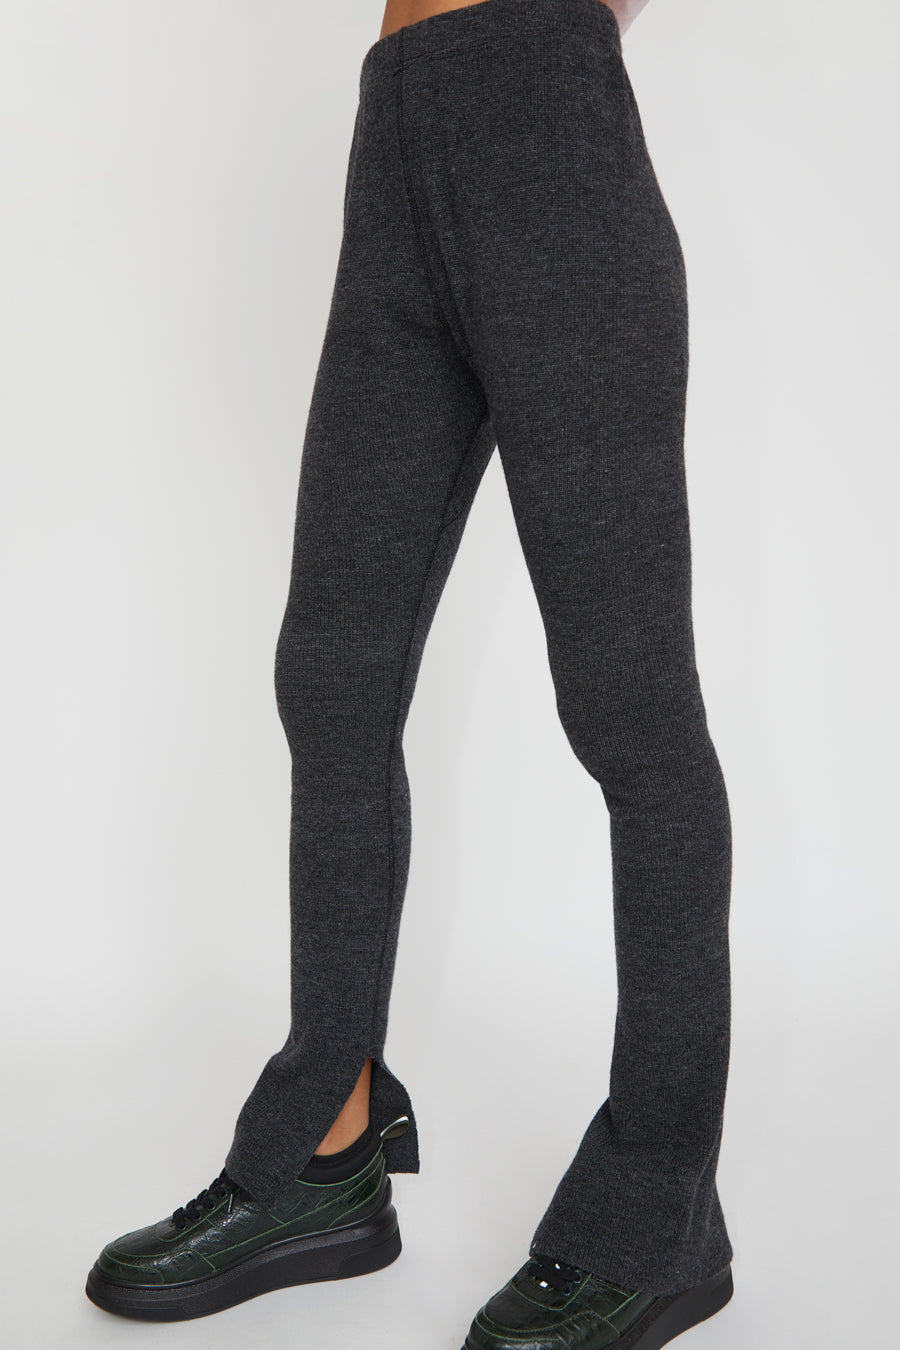 StandAlone Wool and Cashmere Leggings in Dark Grey